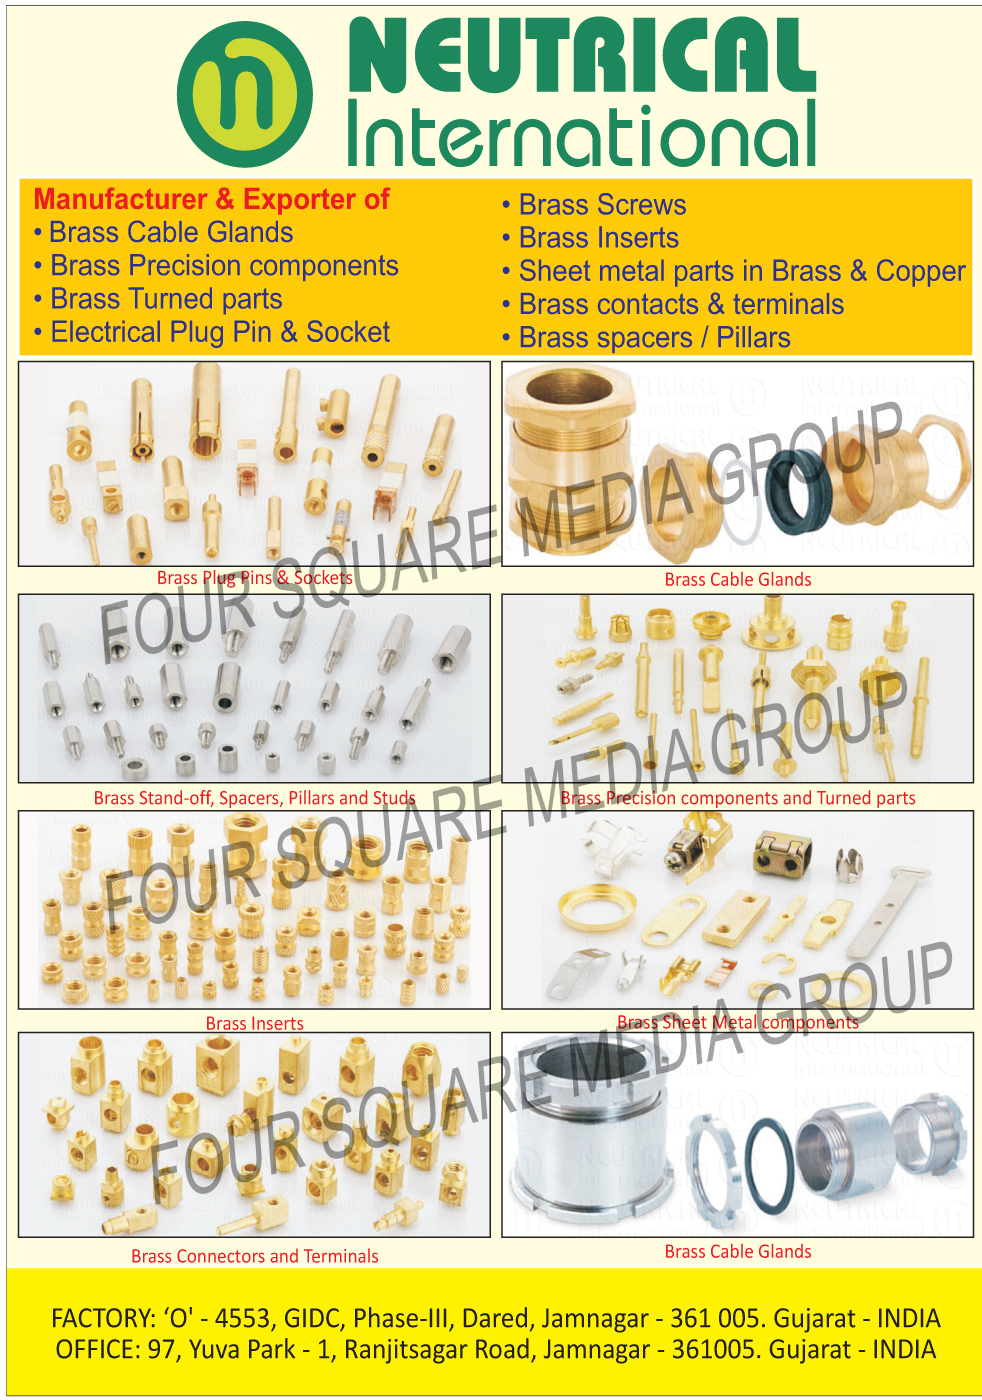 Brass Cable Glands, Brass Precision Components, Brass Turned Parts, Electrical Plug Pins, Electrical Plug Sockets, Brass Screws, Brass Inserts, Brass Sheet Metal Parts, Copper Sheet Metal Parts, Brass Components, Brass Terminals, Brass Spacers, Brass Pillars, Brass Stand Off, Brass Studs, Brass Connectors